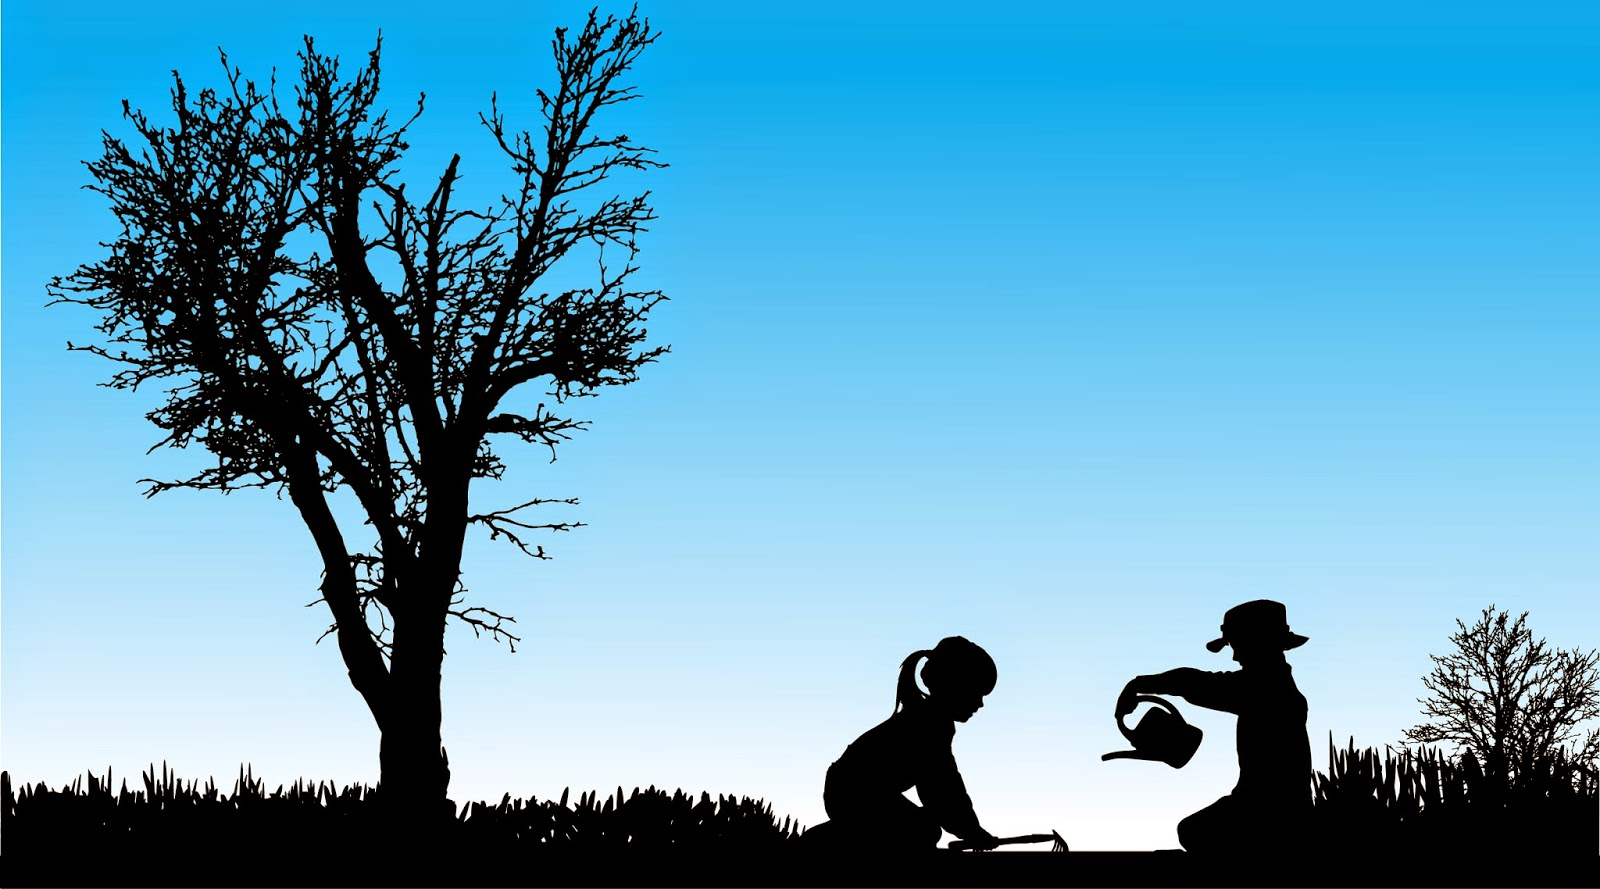 Silhouette picture of a girl and boy gardening next to a tree